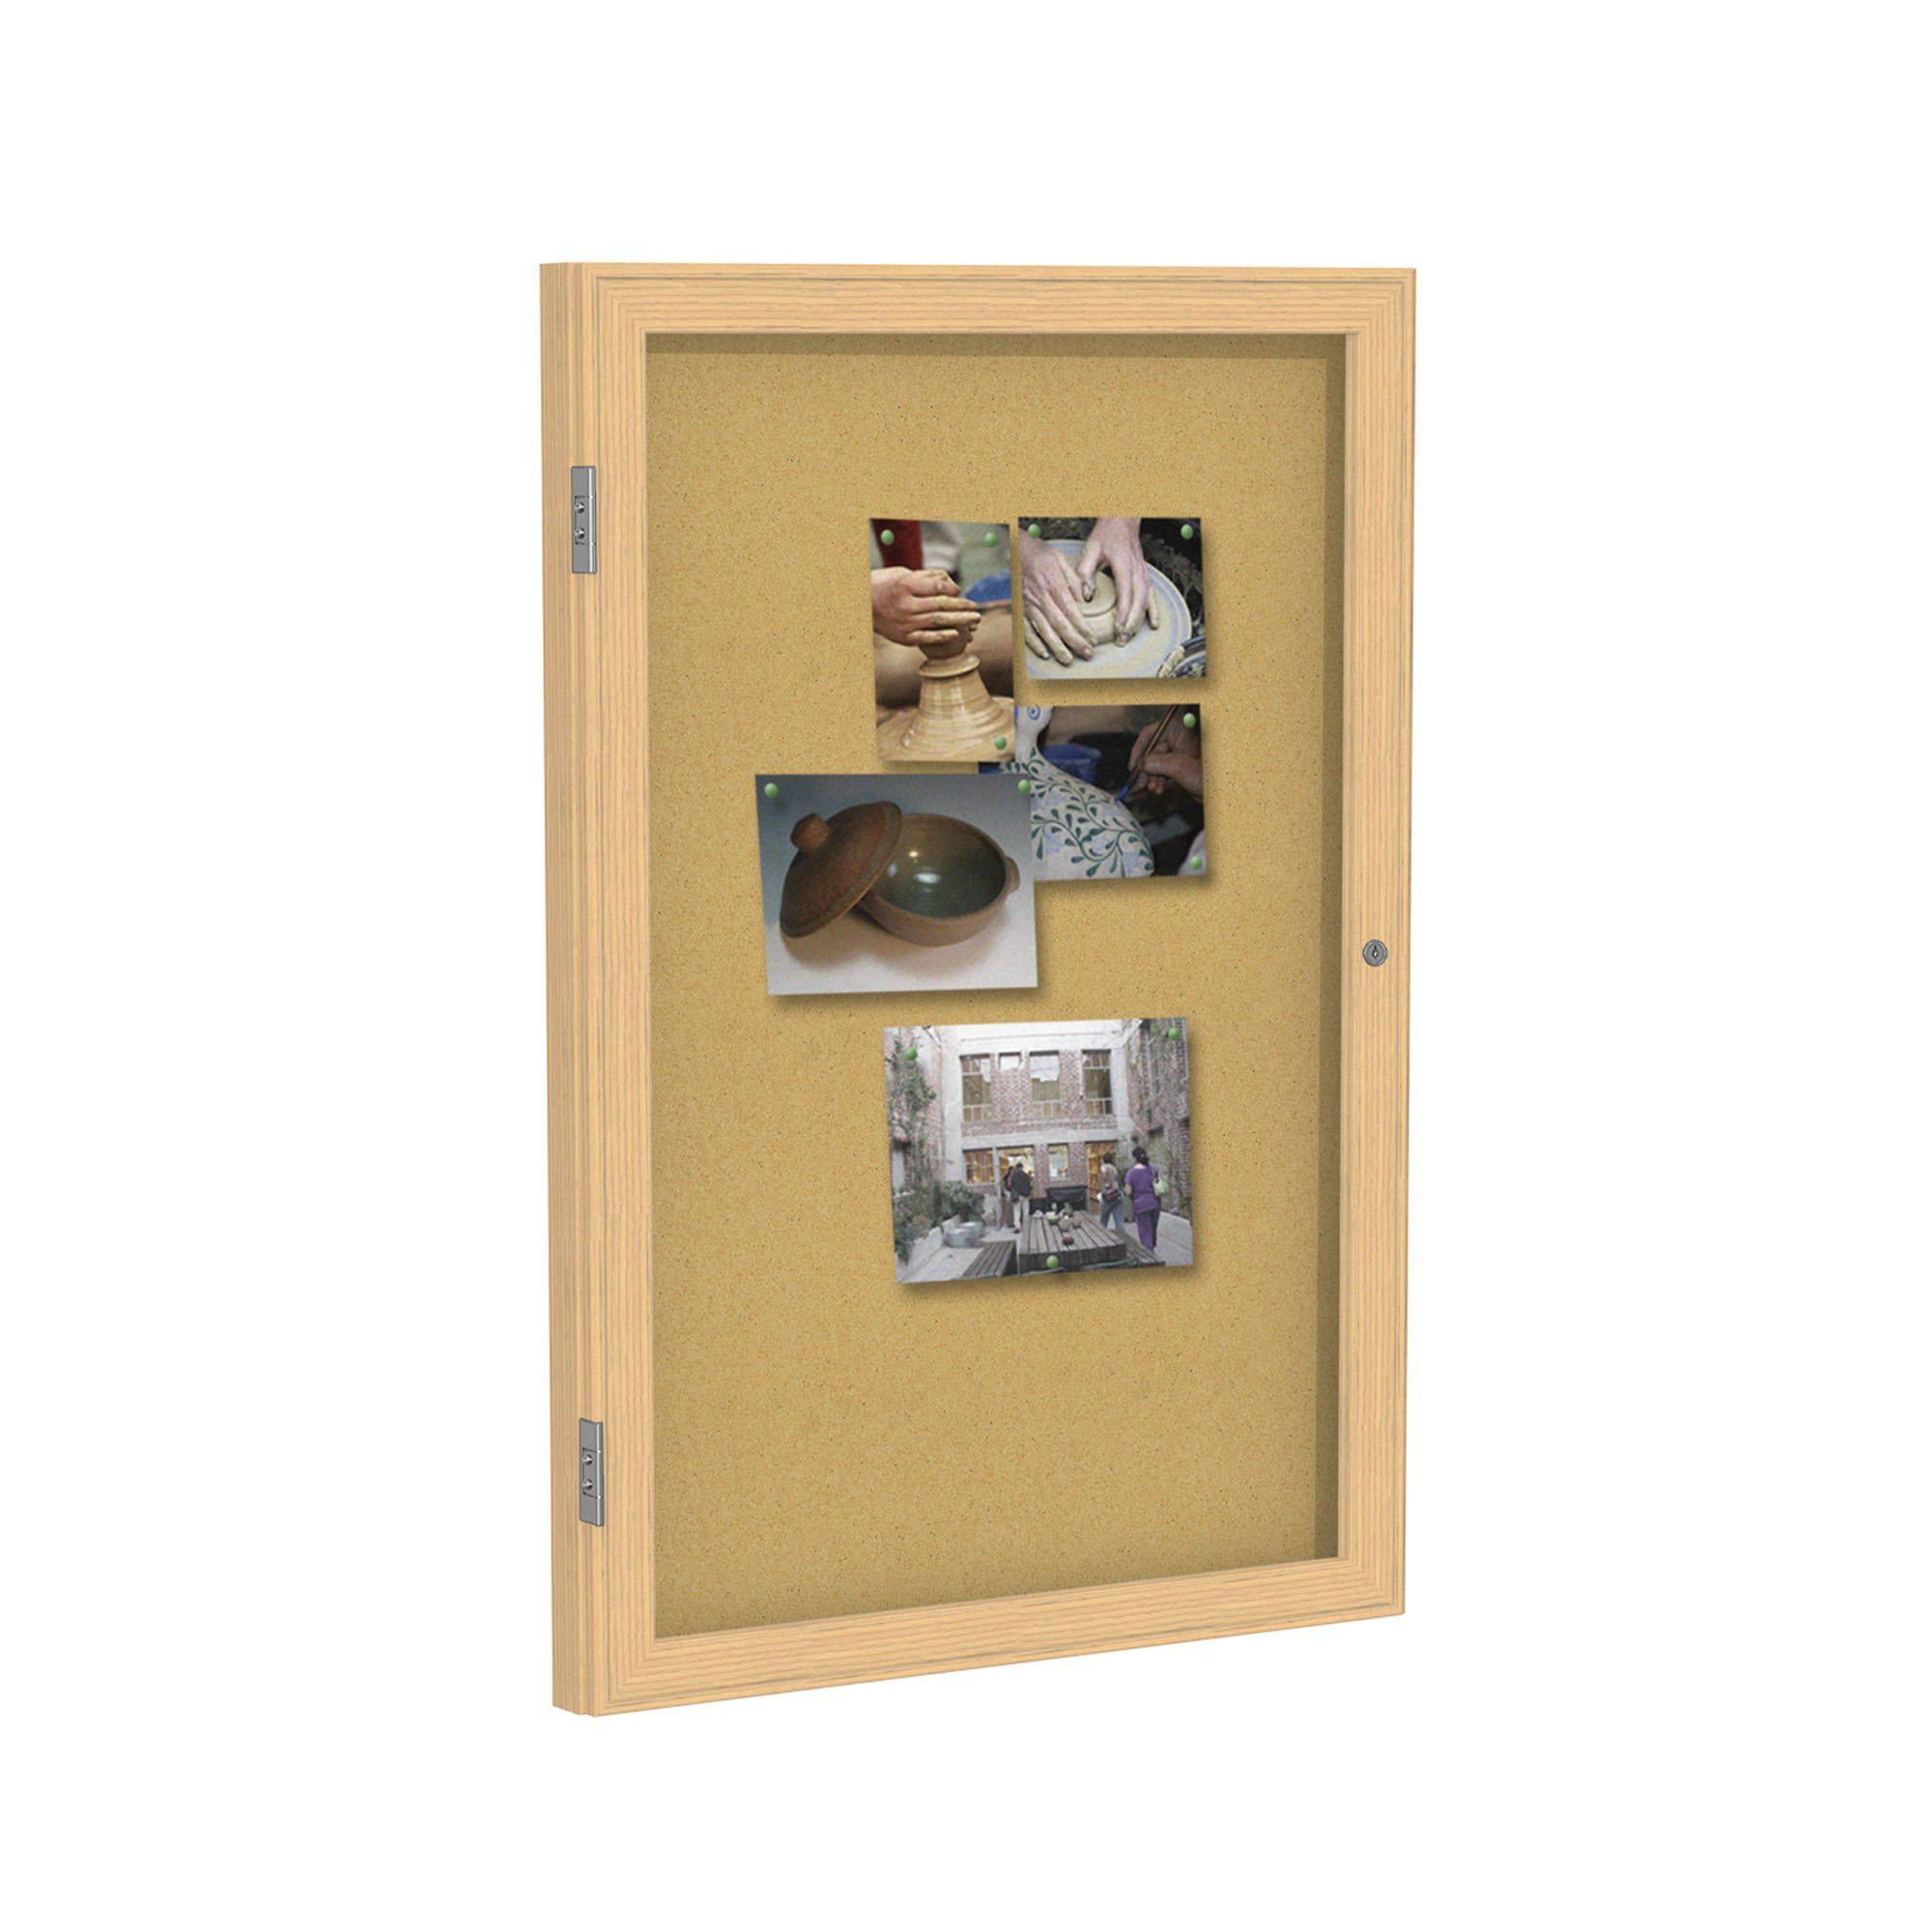 "Enclosed Natural Cork Bulletin Board with Oak Wood Frame-Boards-24""H x 18""W-1-"